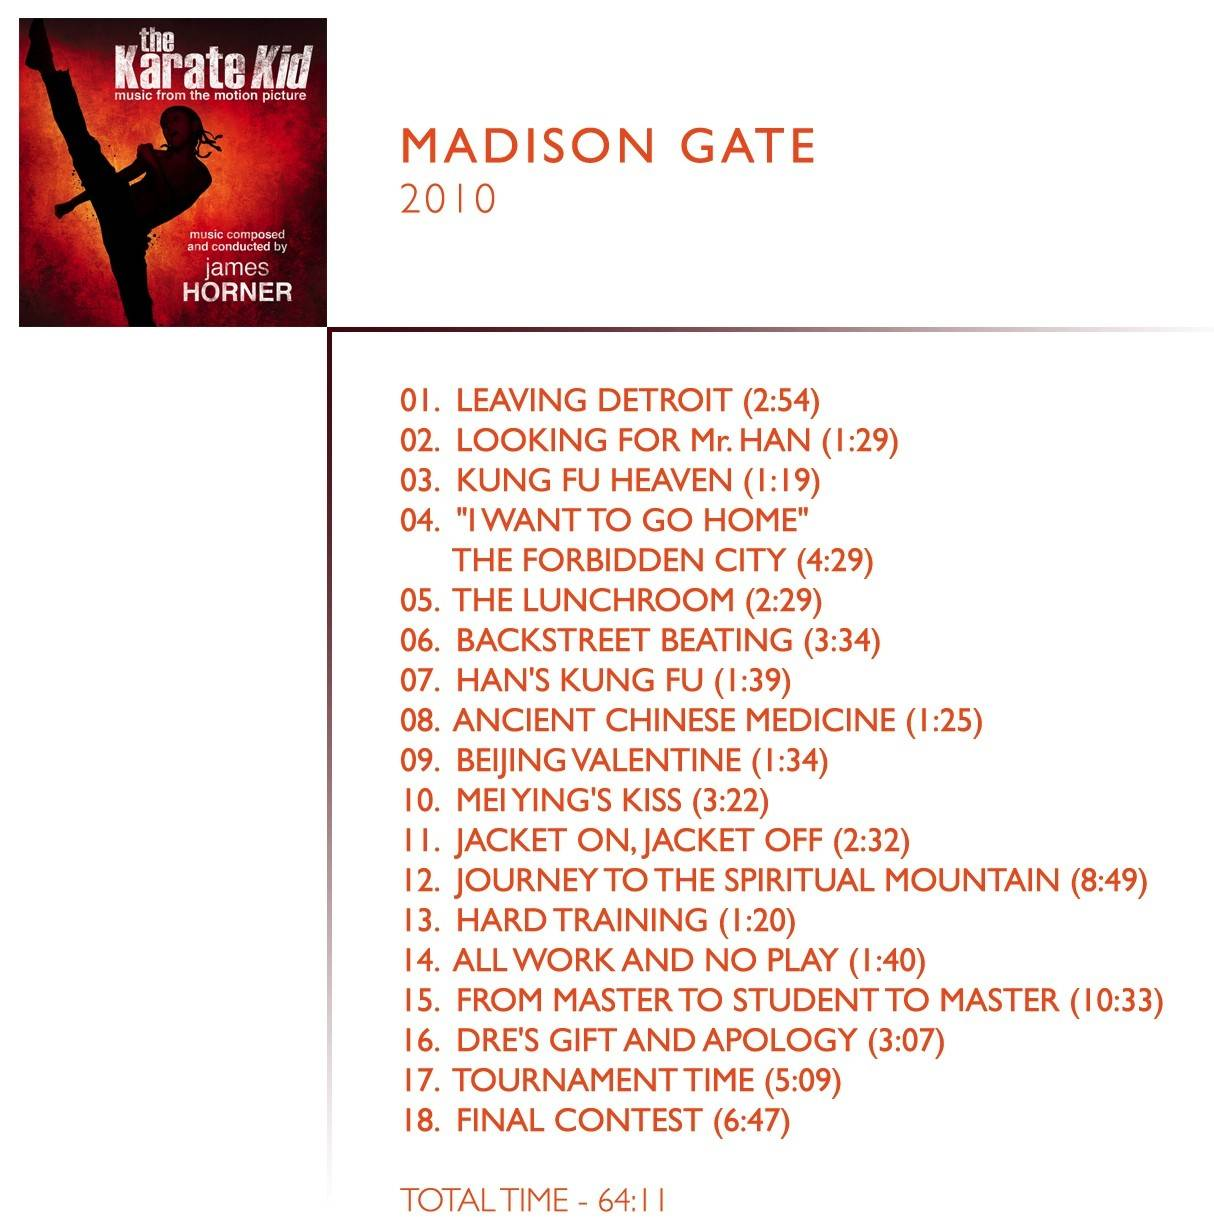 """1.  Leaving Detroit (02:54) 2.  Looking For Mr. Han (01:29) 3.  Kung Fu Heaven (01:19) 4.  """"I Want To Go Home"""" / The Forbidden City (04:29) 5.  The Lunchroom (02:29) 6.  Backstreet Beating (03:34) 7.  Han's Kung Fu (01:39) 8.  Ancient Chinese Medicine (01:25) 9.  Beijing Valentine (01:34) 10.  Mei Ying's Kiss (03:22) 11.  Jacket On, Jacket Off (02:32) 12.  Journey To The Spiritual Mountain (08:49) 13.  Hard Training (01:20) 14.  All Work And No Play (01:40) 15.  From Master To Student To Master (10:33) 16.  Dre's Gift And Apology (03:07) 17.  Tournament Time (05:09) 18.  Final Contest (06:47)"""